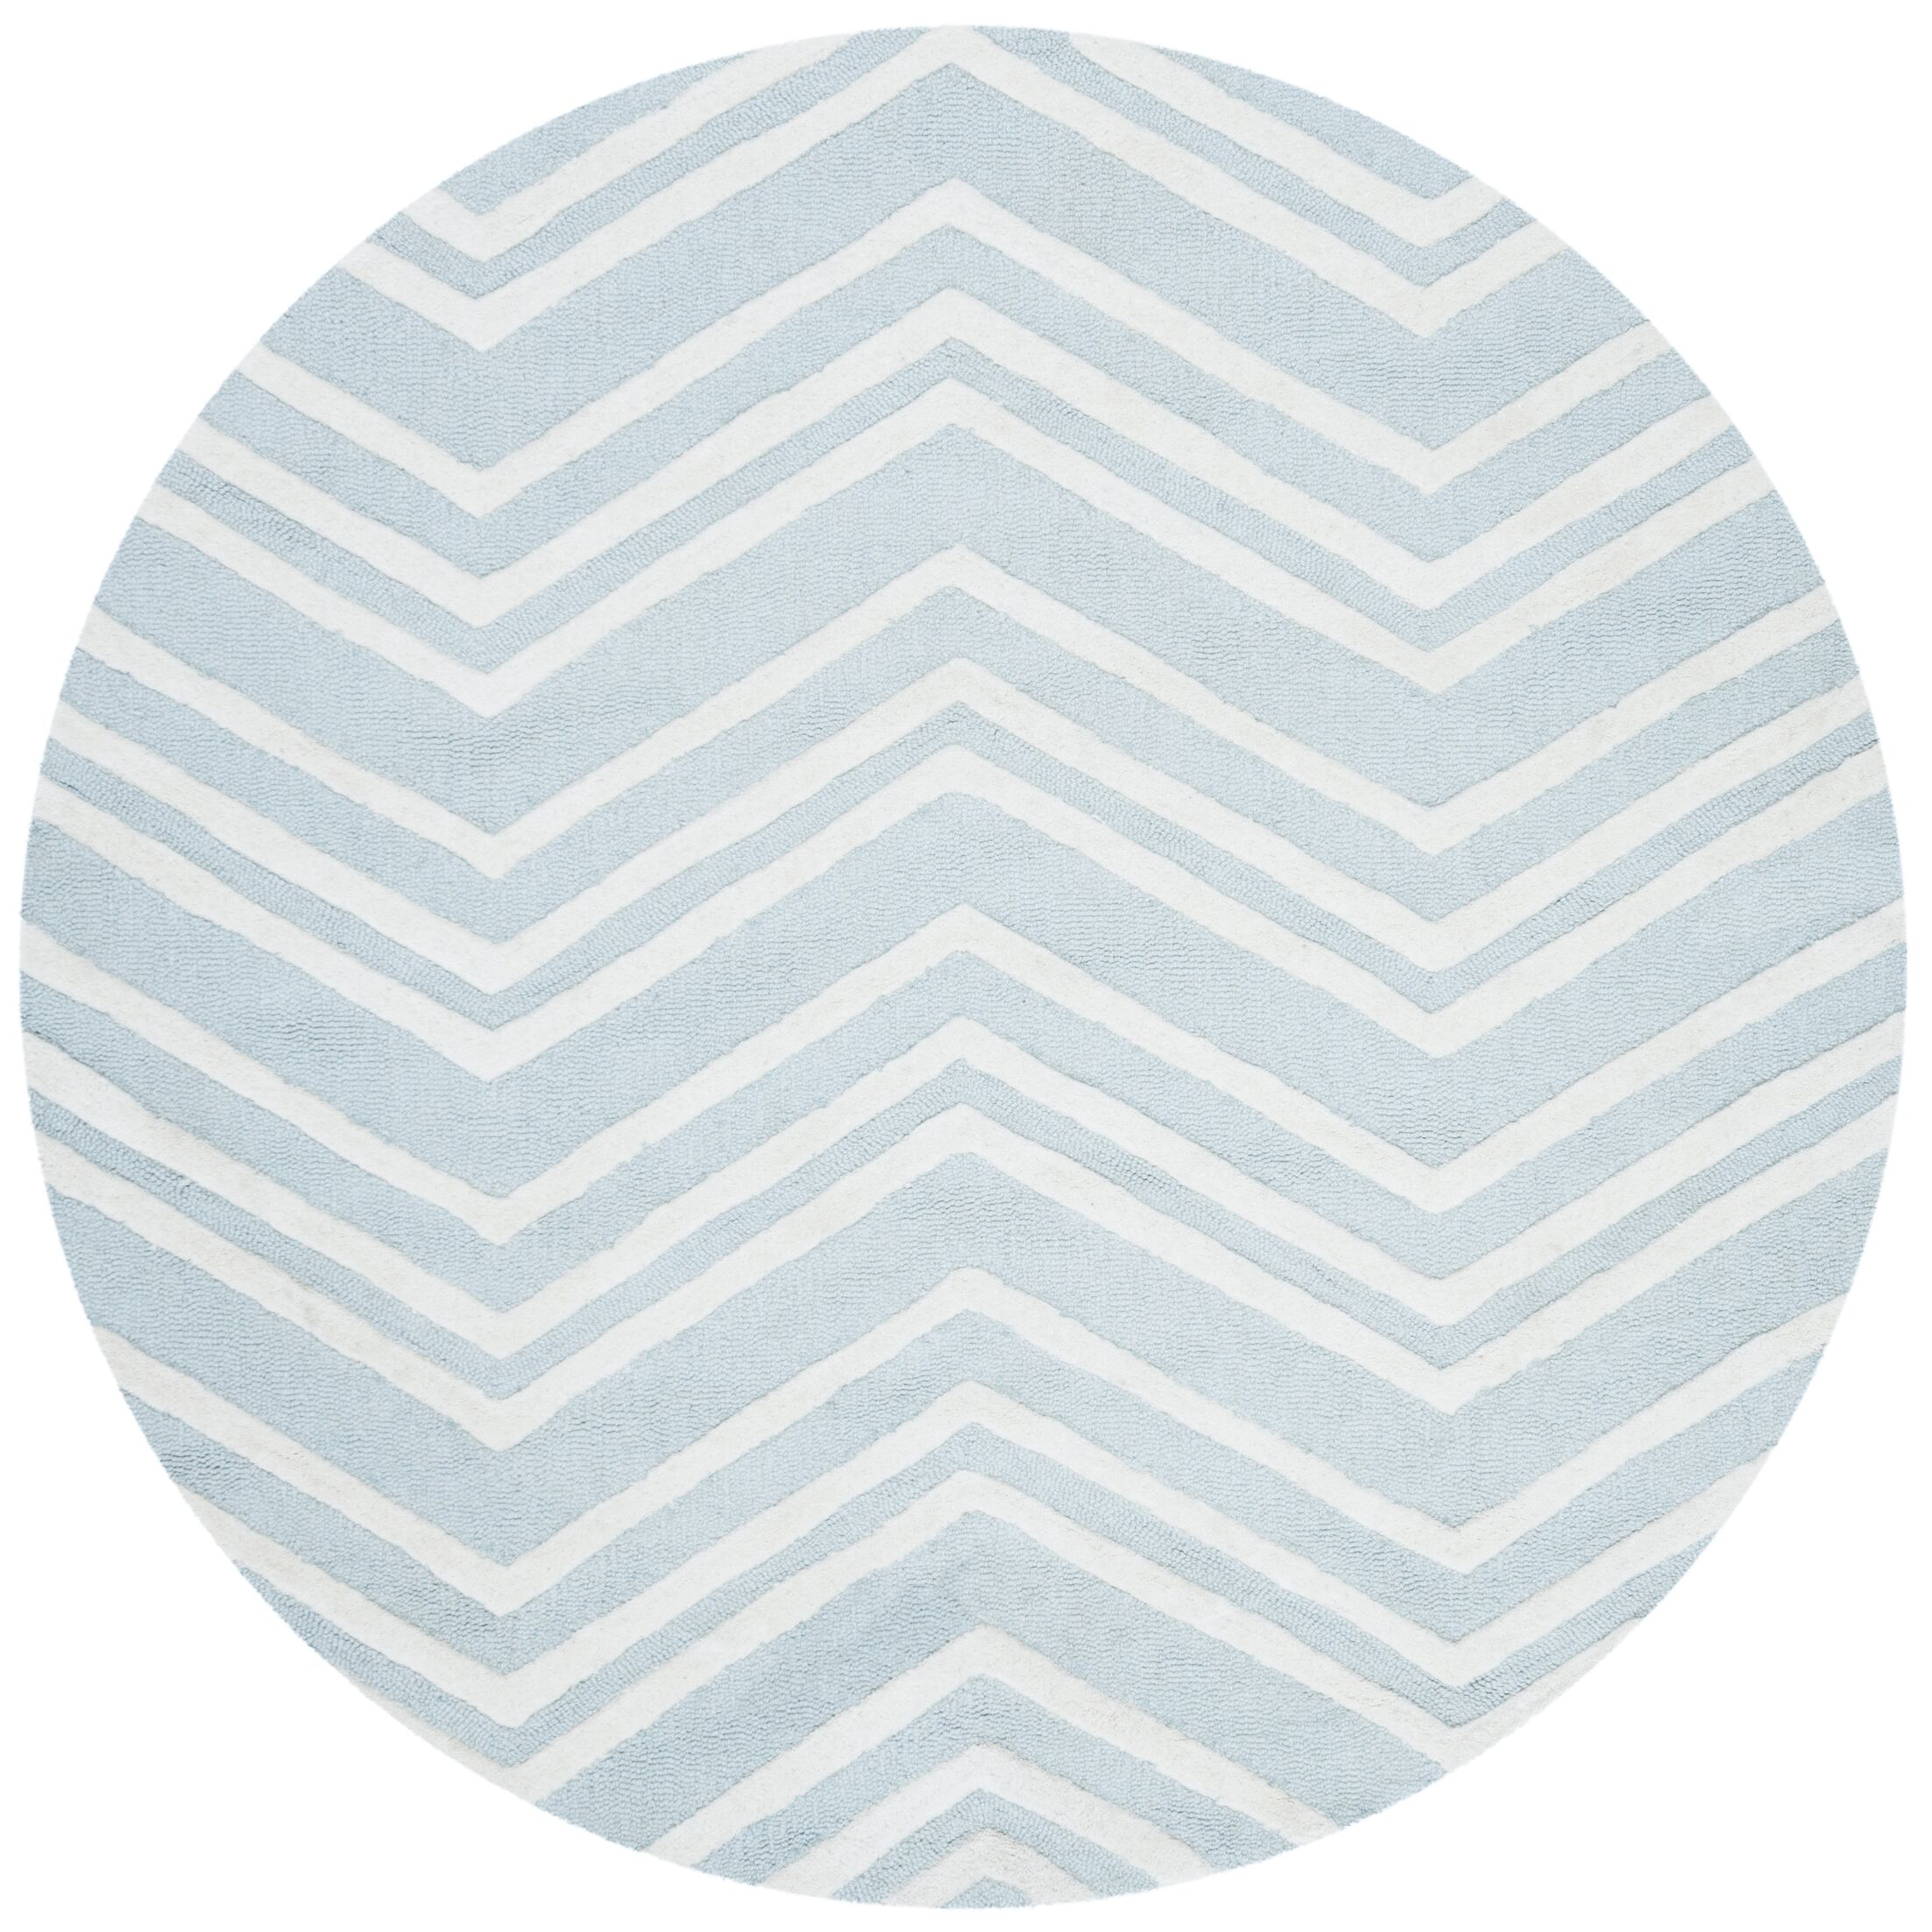 Claro Wave Hand-Tufted Mint/Ivory Area Rug Rug Size: Round 5'